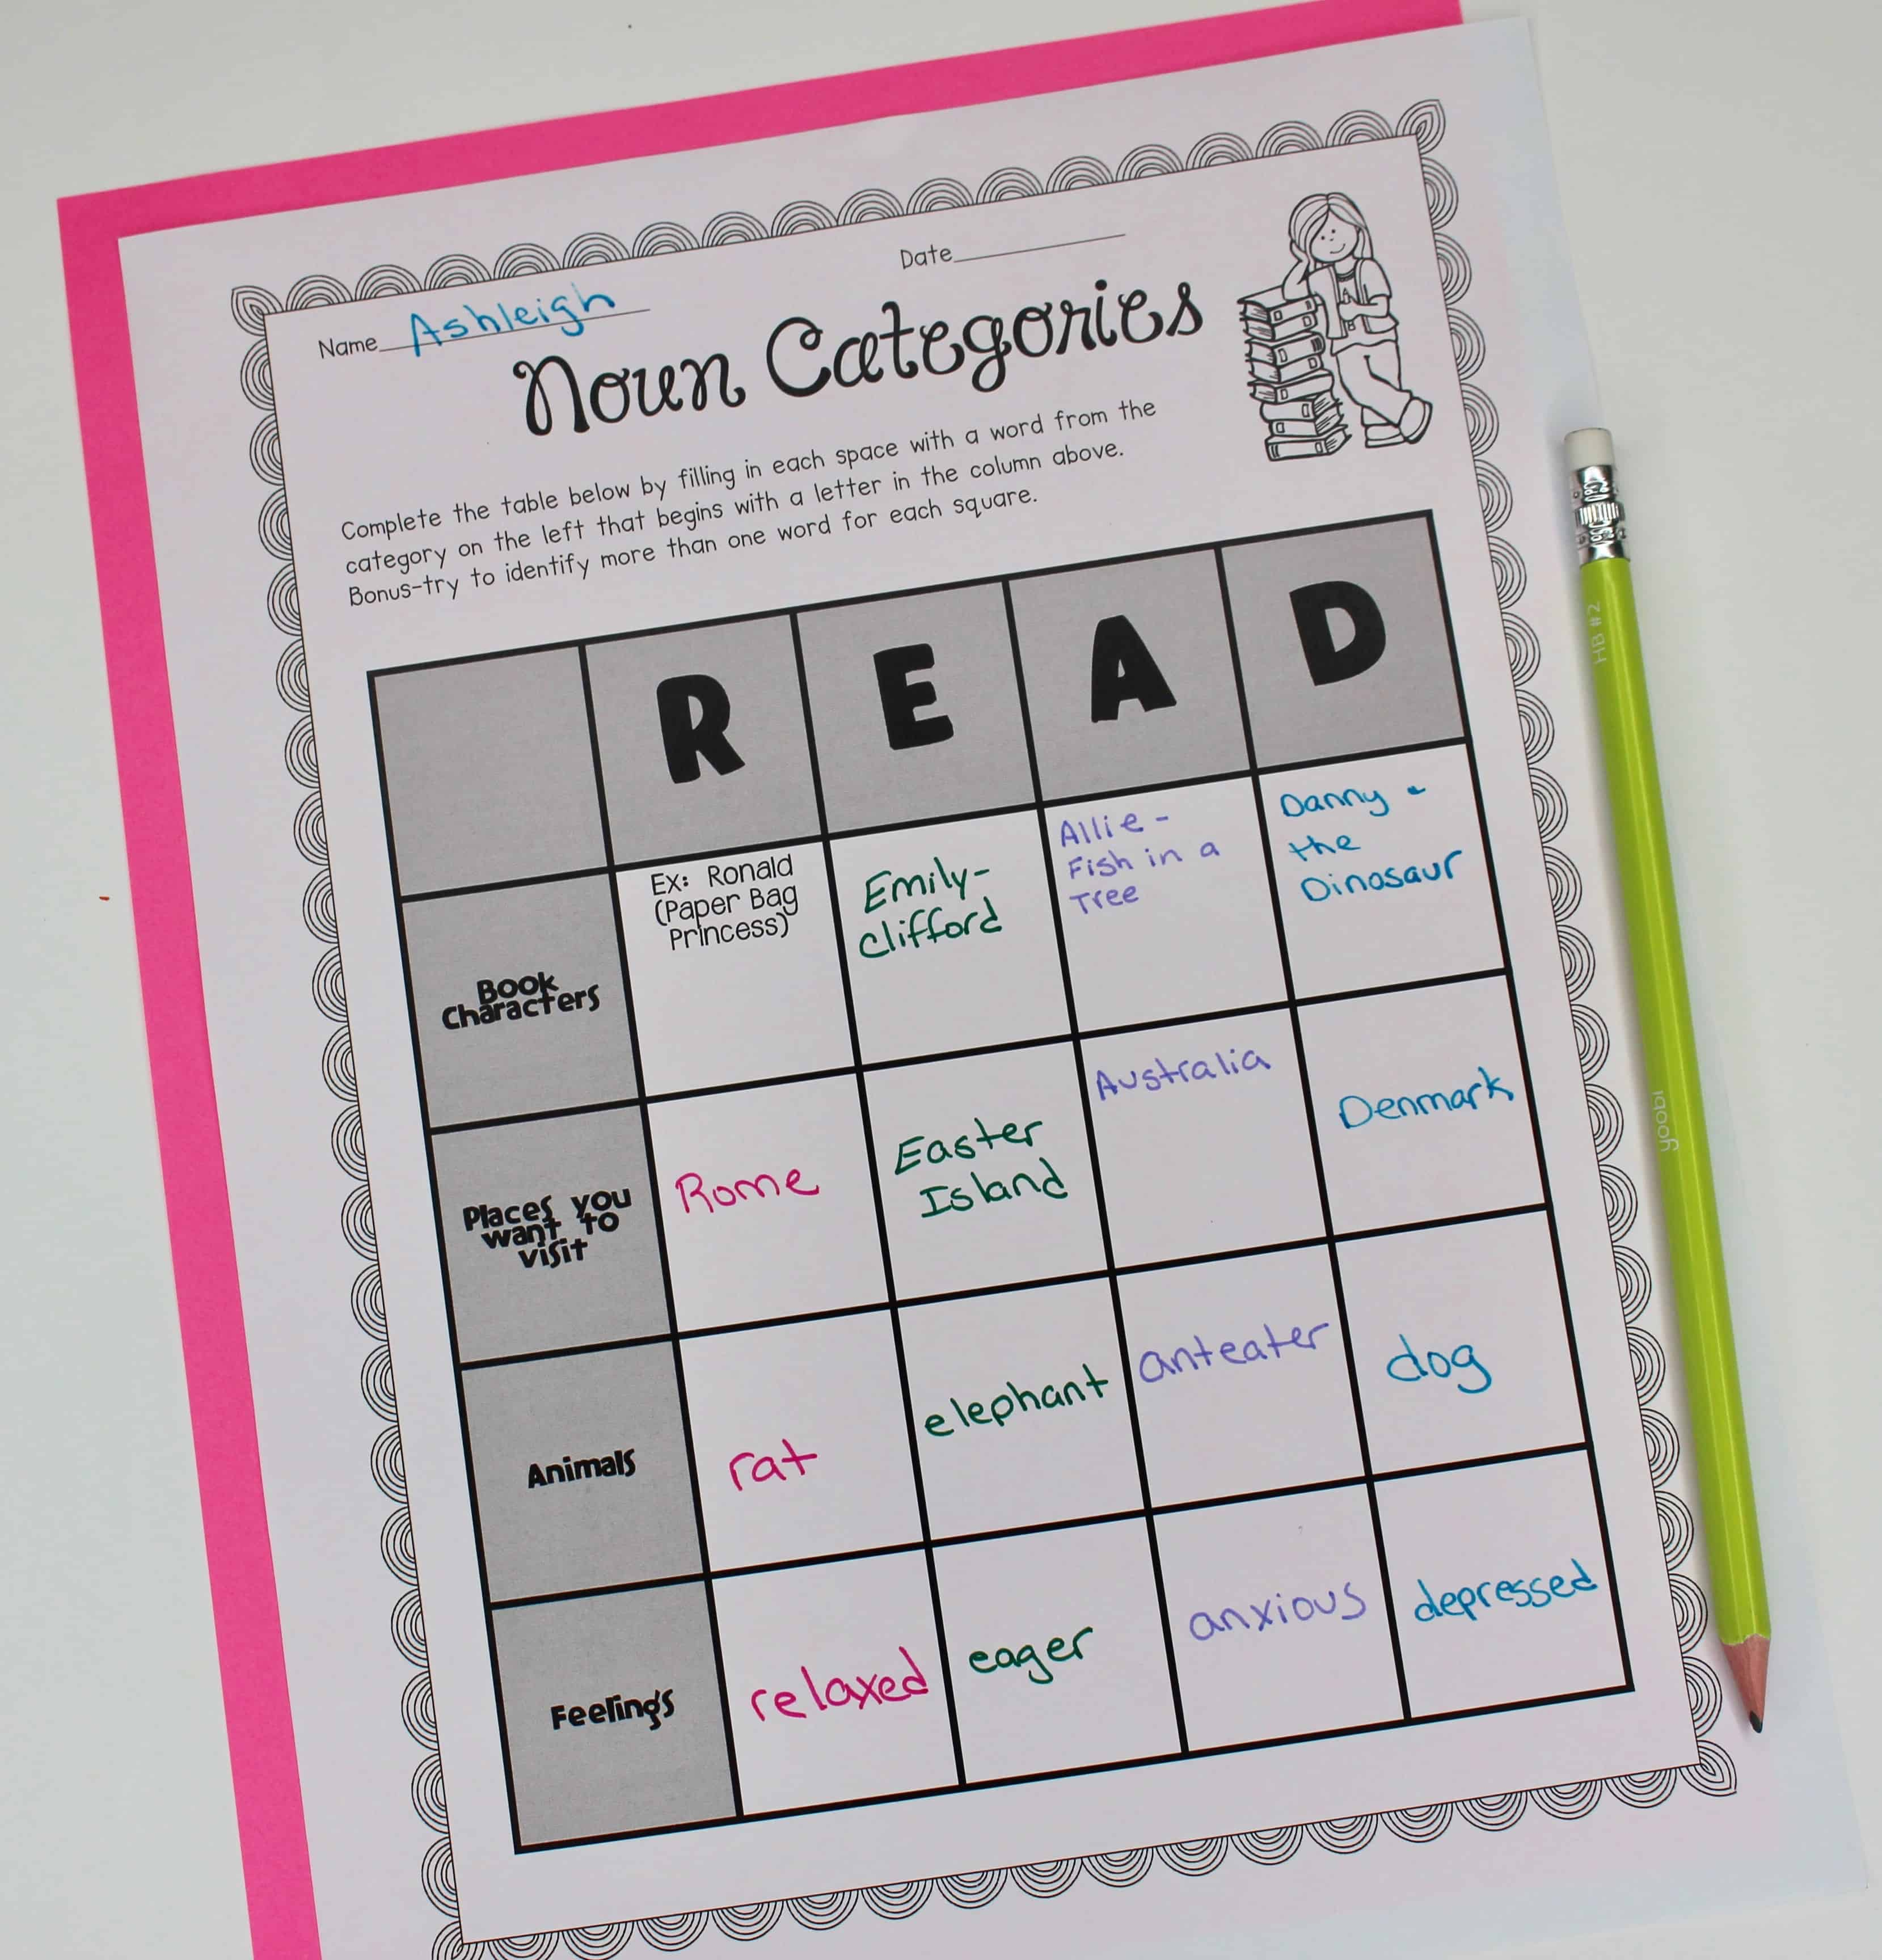 Grammar is usually most people's least favorite subject and topic, which is understandable. If you struggle with teaching nouns, then you'll want to read this blog post, where I'm sharing lots of tips for teaching nouns in fun and engaging ways that will catch -- and keep -- students' attention! Click through to read the full post for upper elementary teachers.